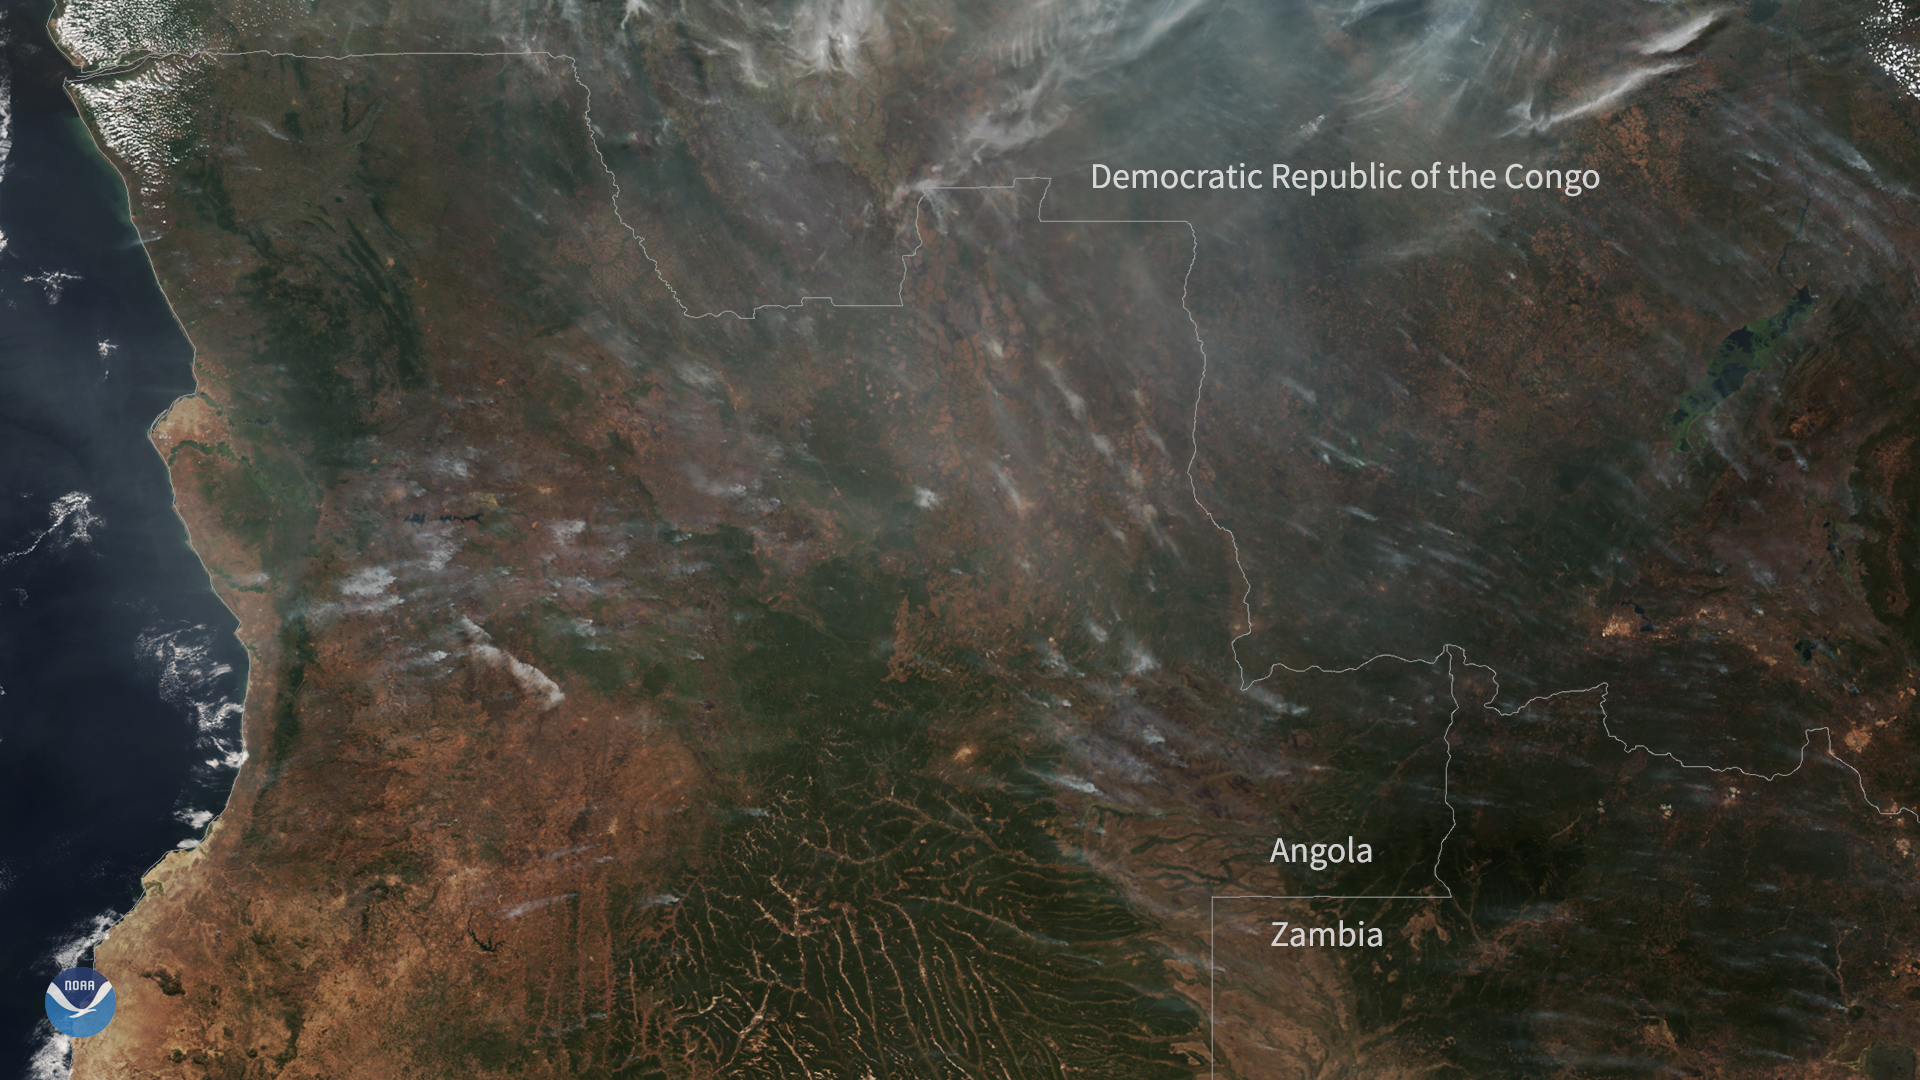 NOAA-20 Spots Fires Burning in Central Africa